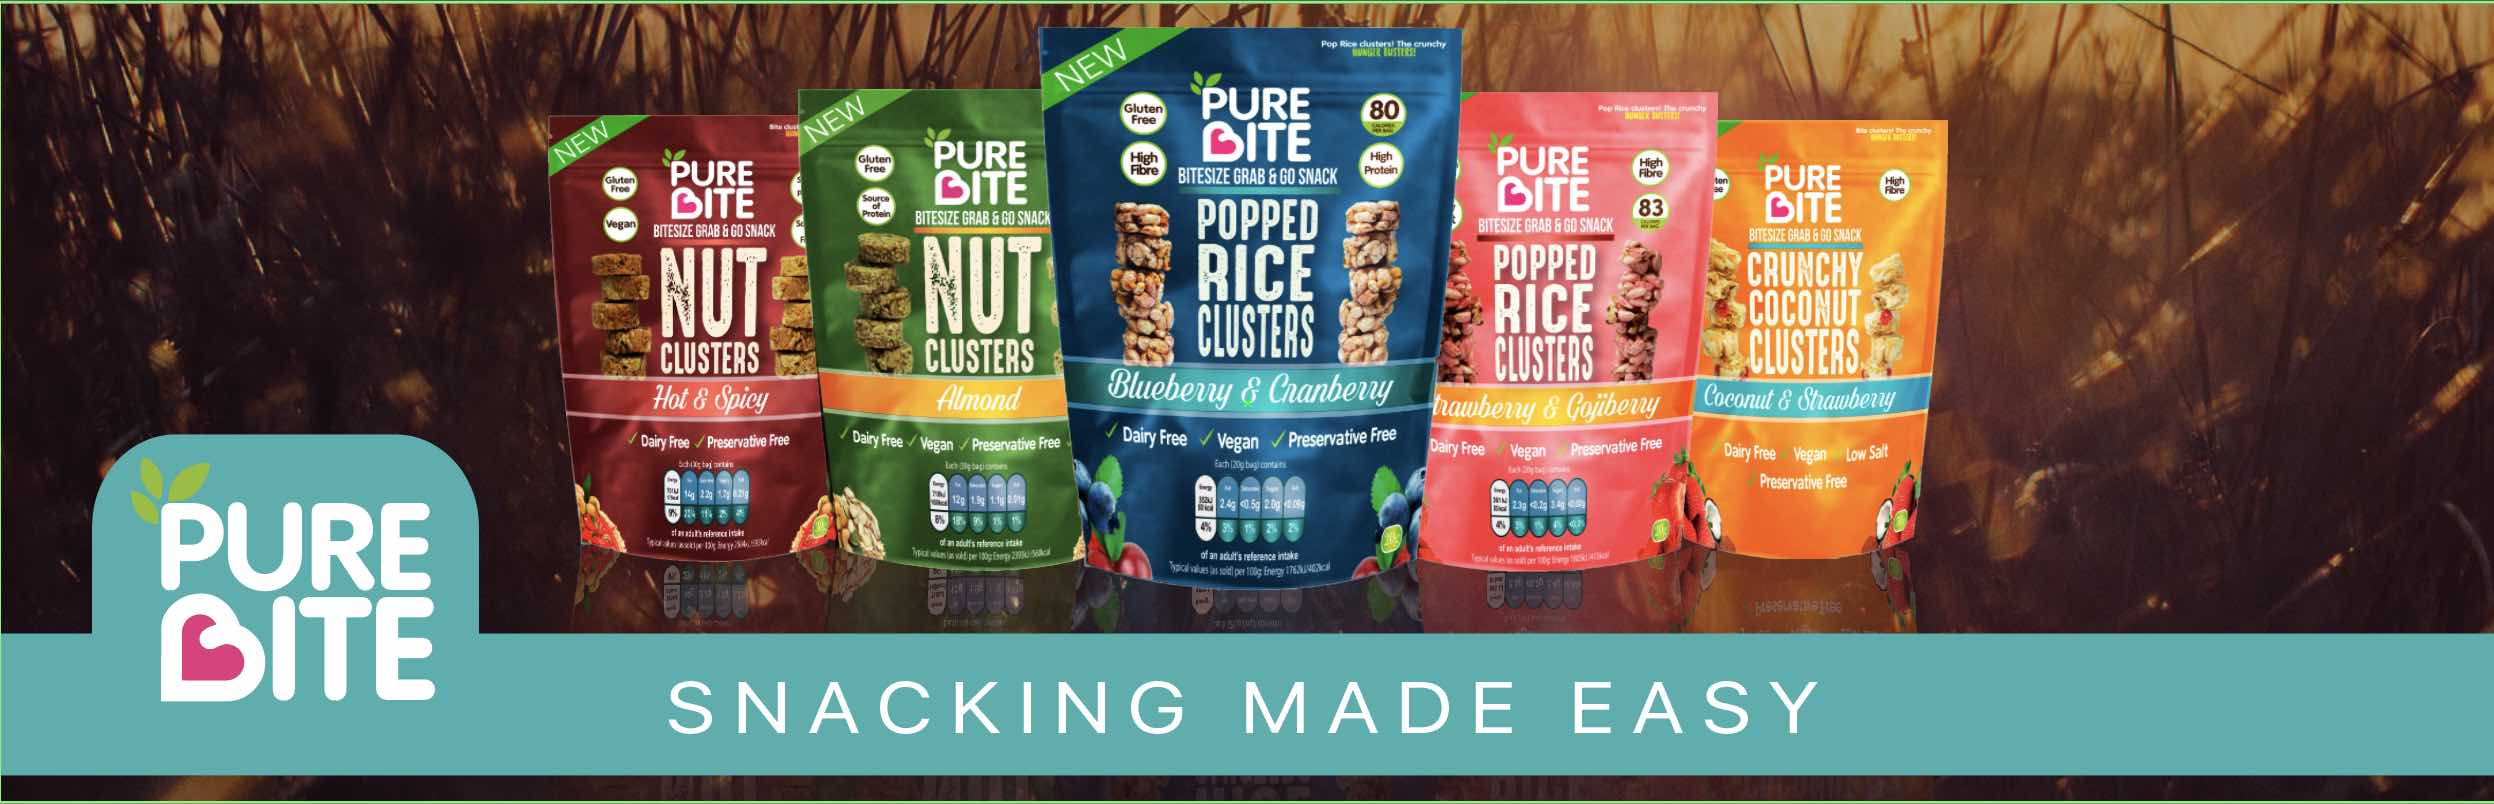 Pure Bite | Buy Now | Snacking Innovation